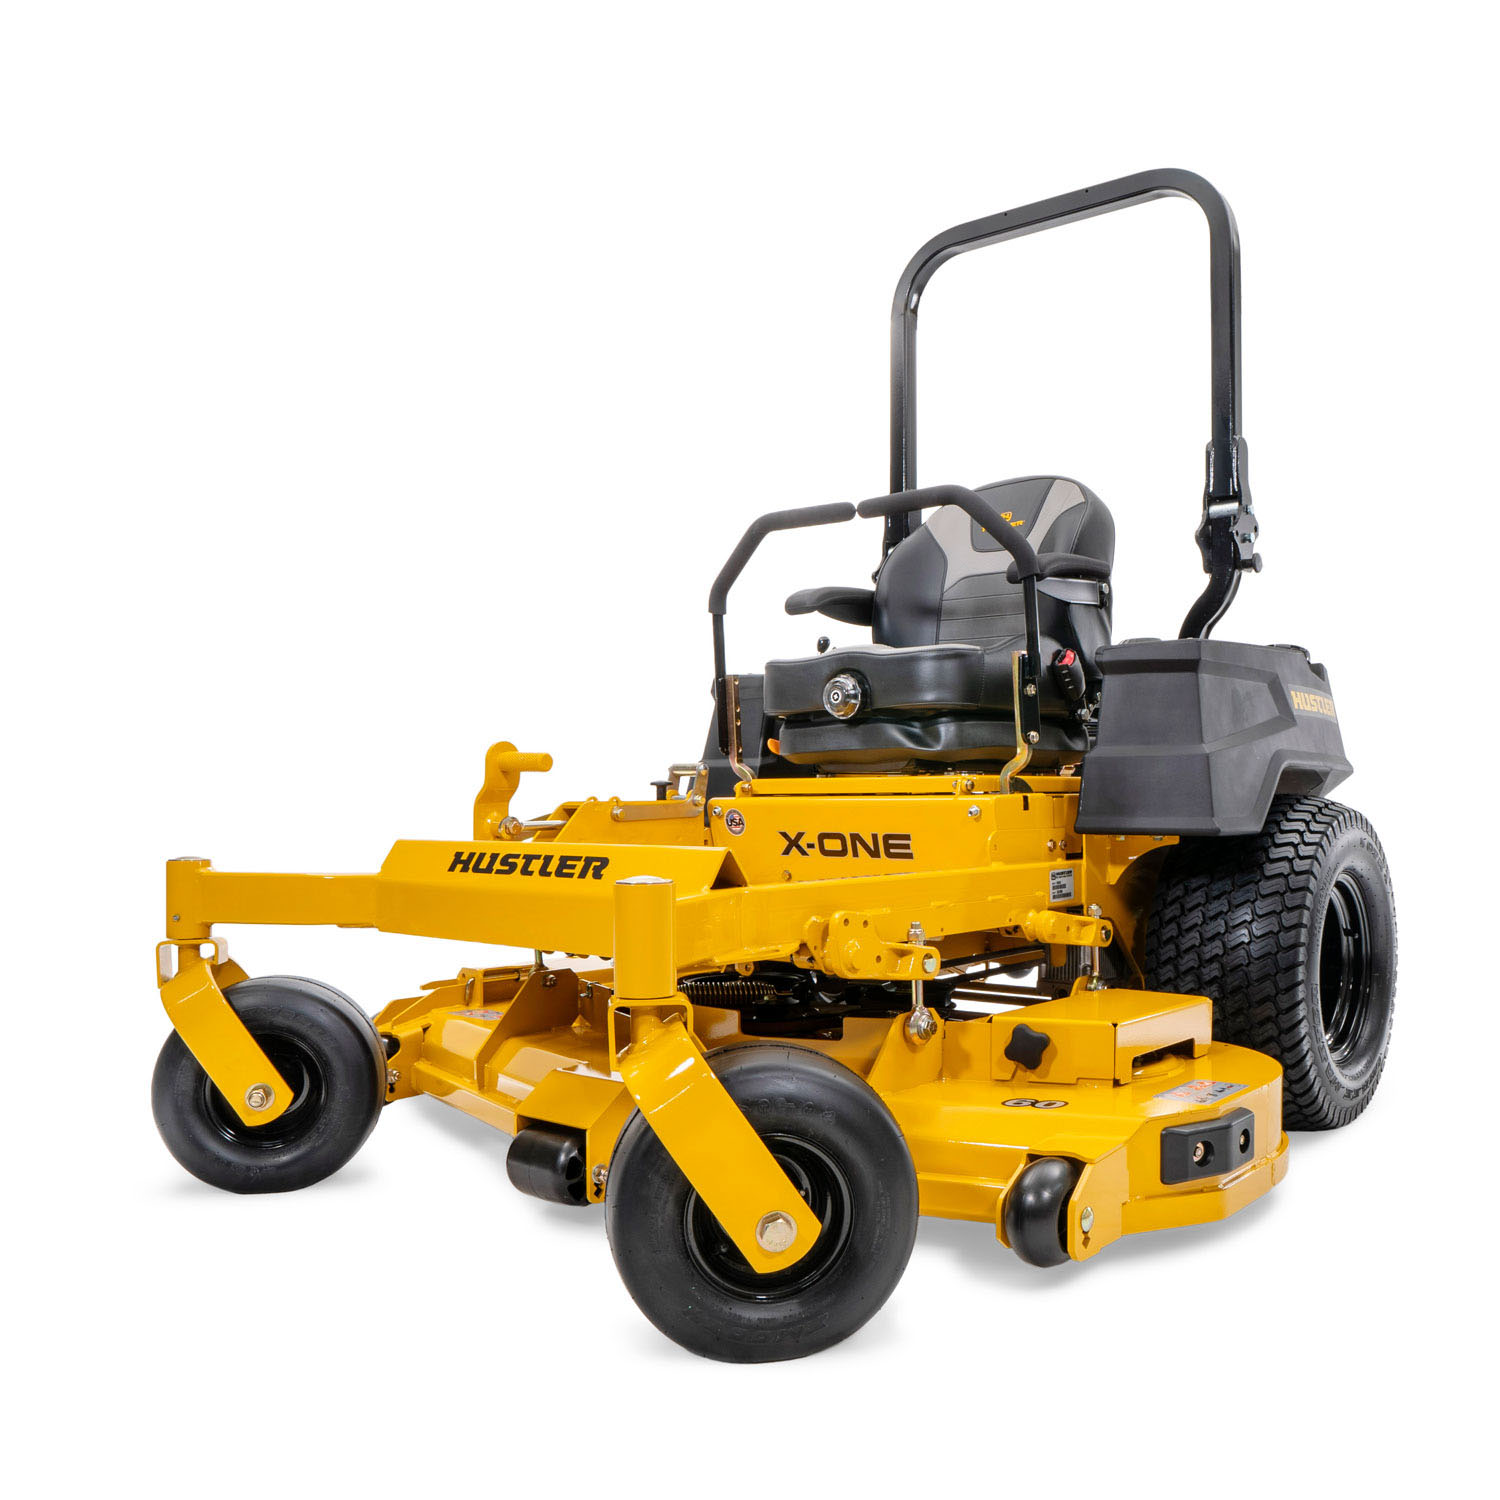 Image of the rear three quarters of a yellow zero-turn mower showing the discharge side of the deck